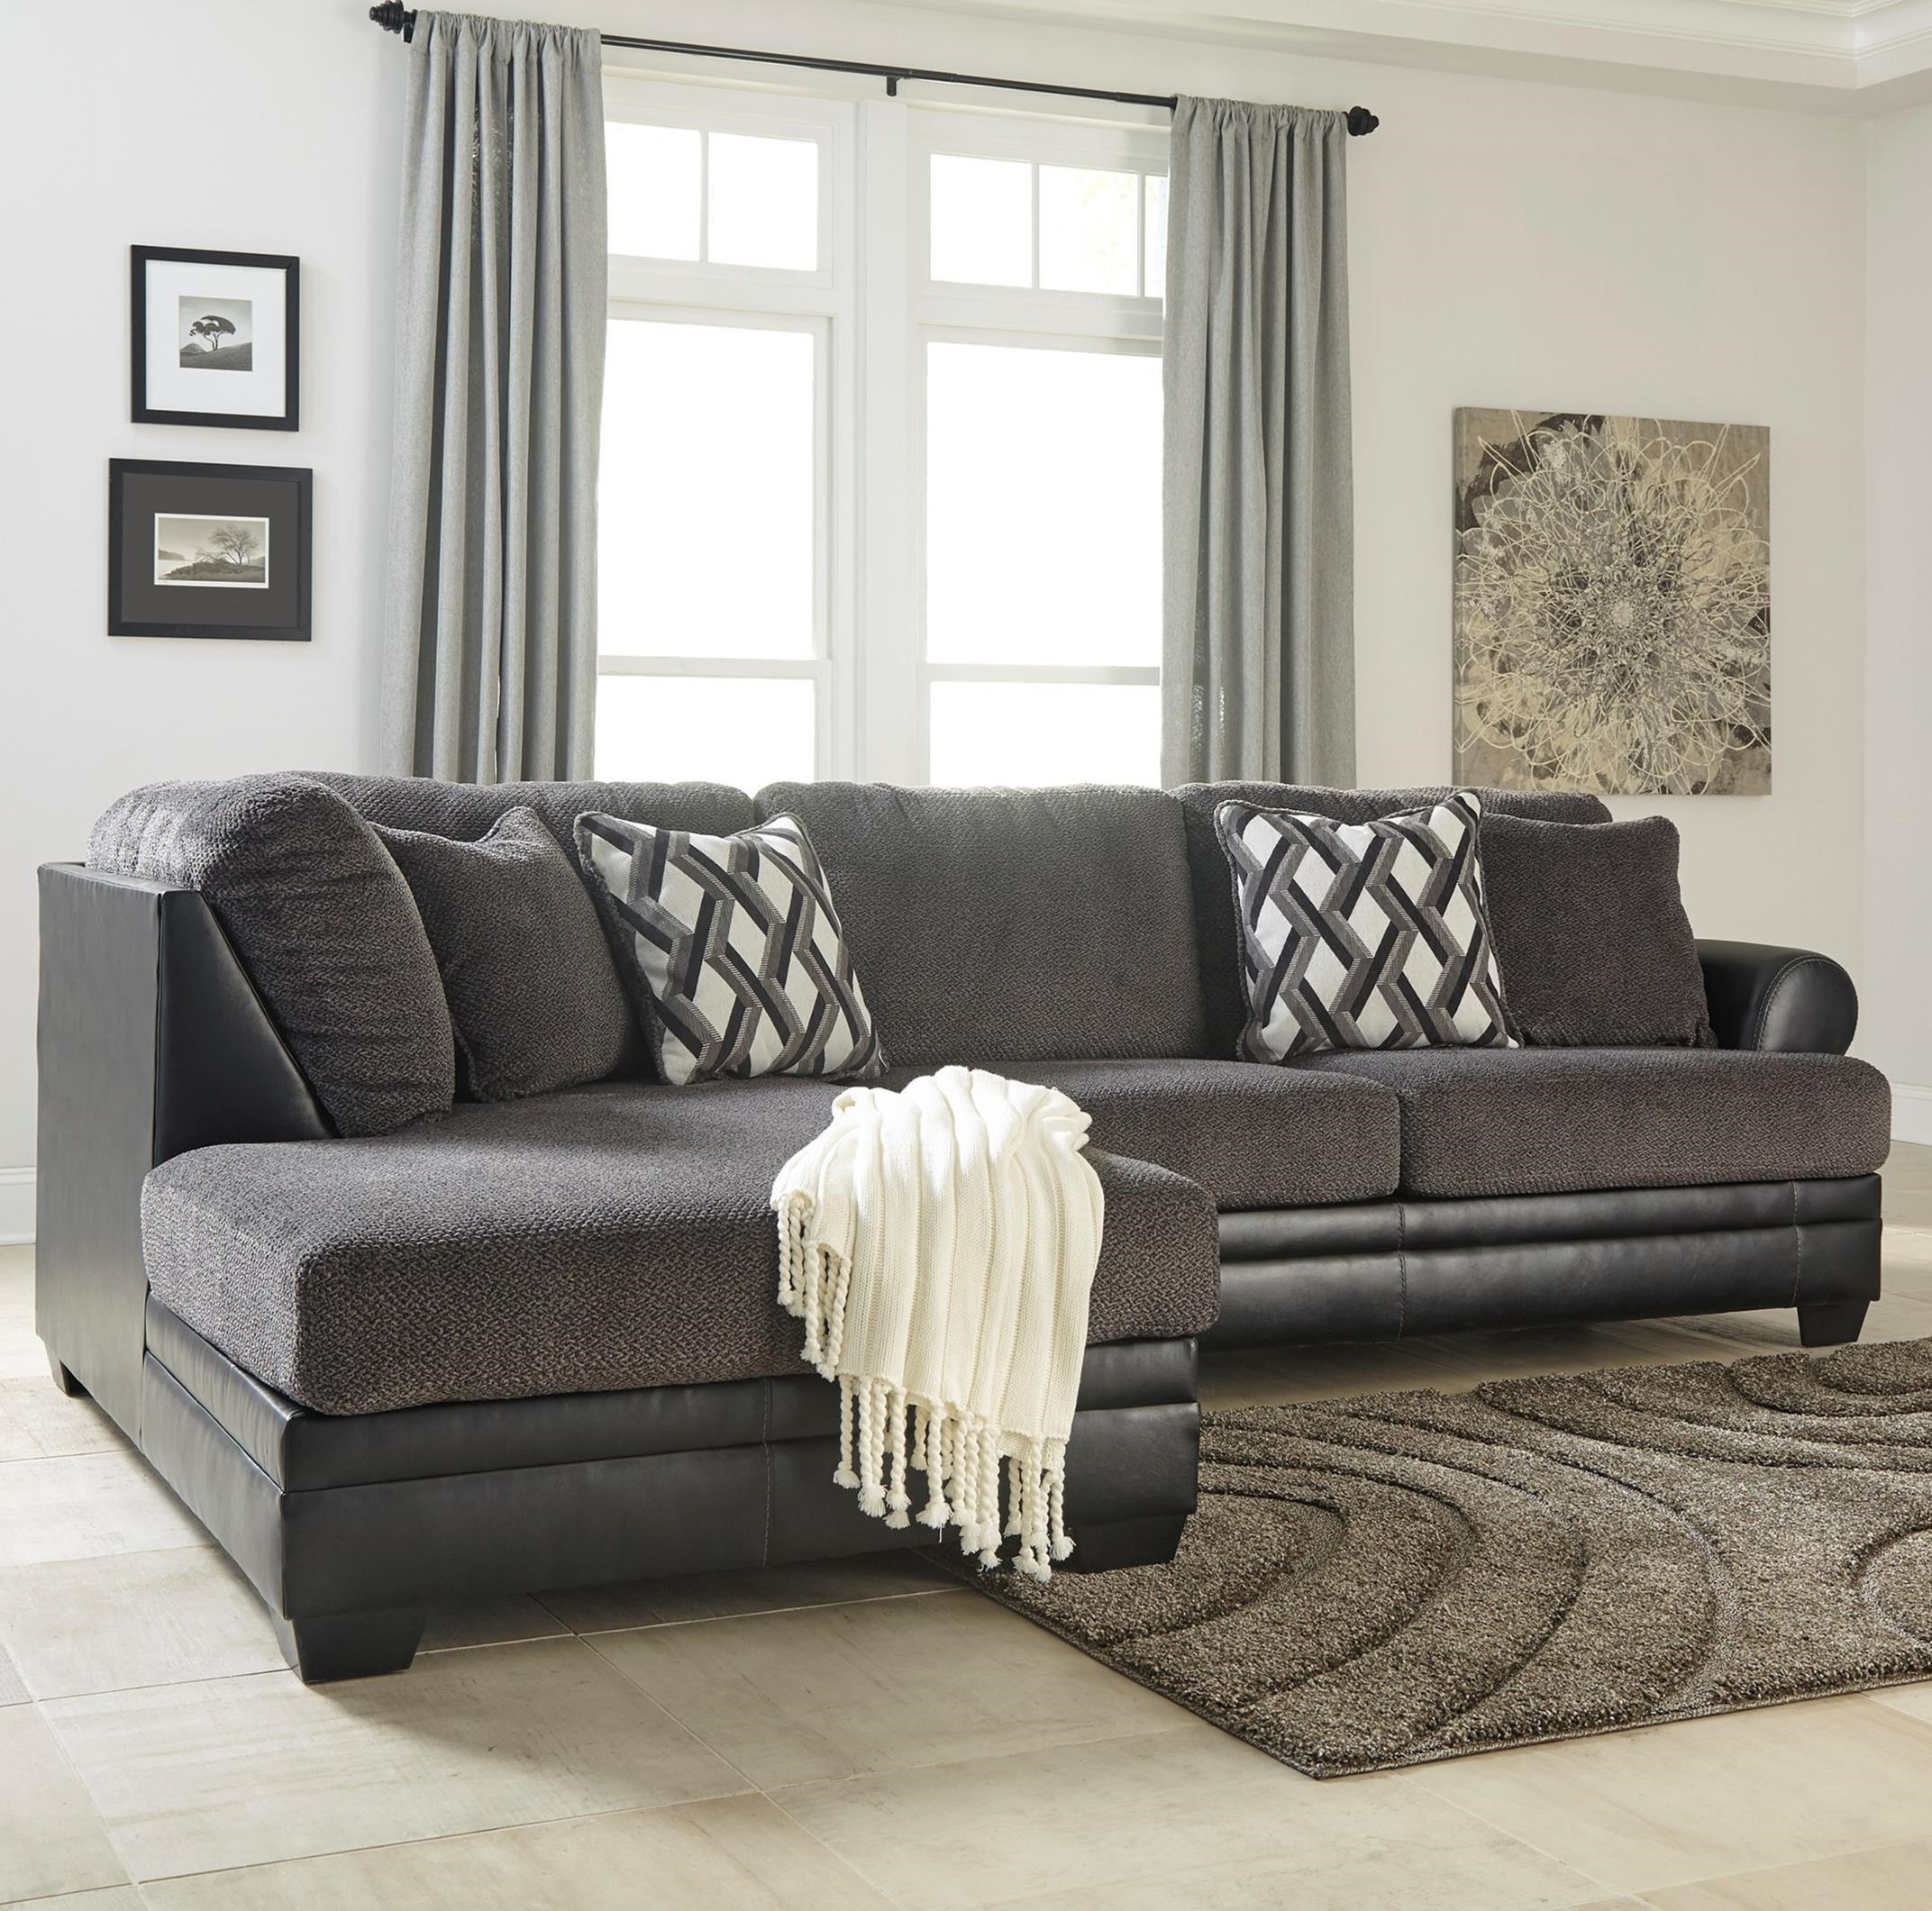 2 piece fabric faux leather sectional with left chaise by benchcraft wolf and gardiner wolf furniture